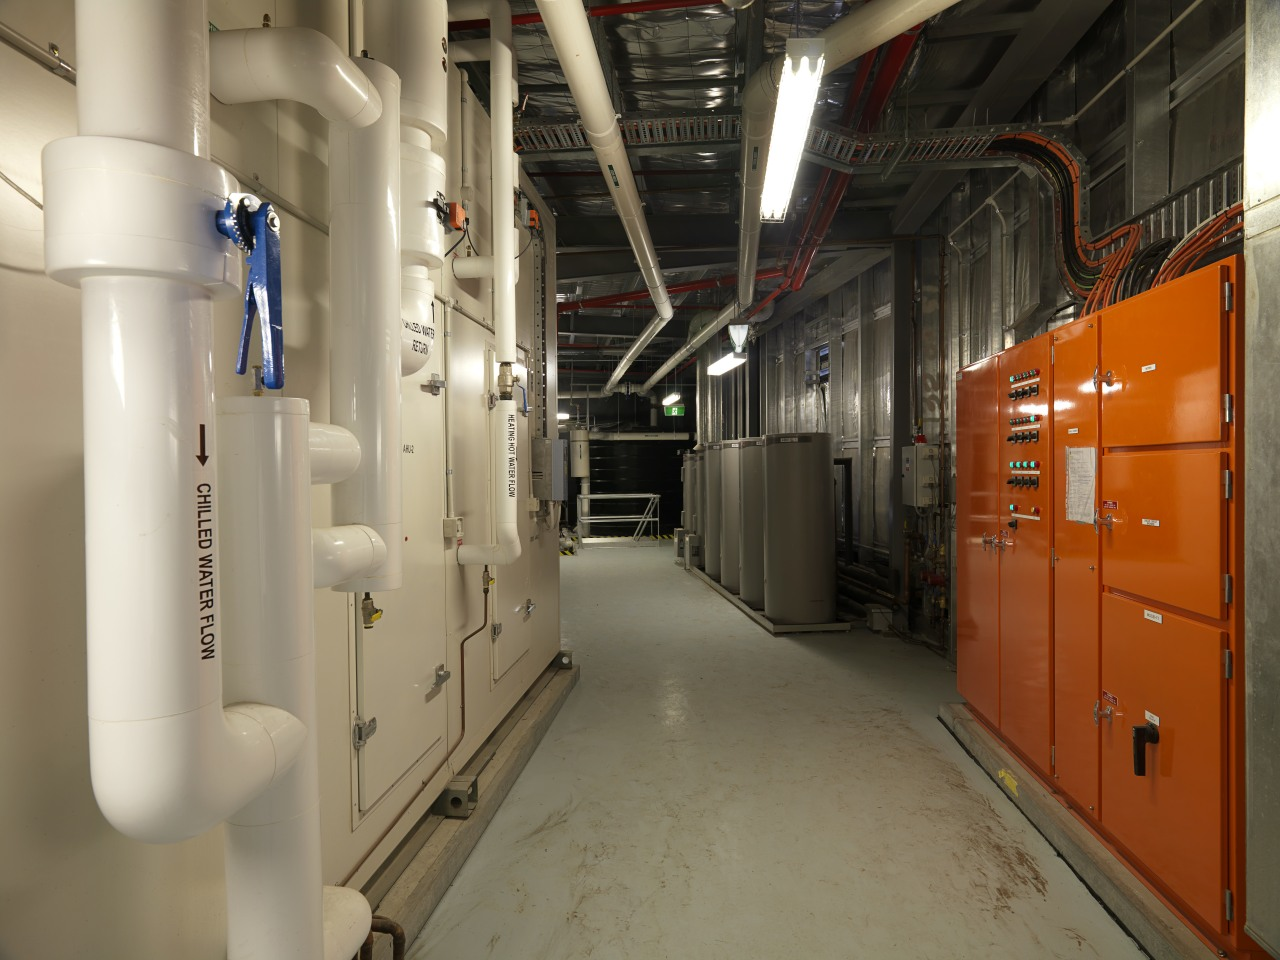 An energy-efficient air conditioning system works by distributing brown